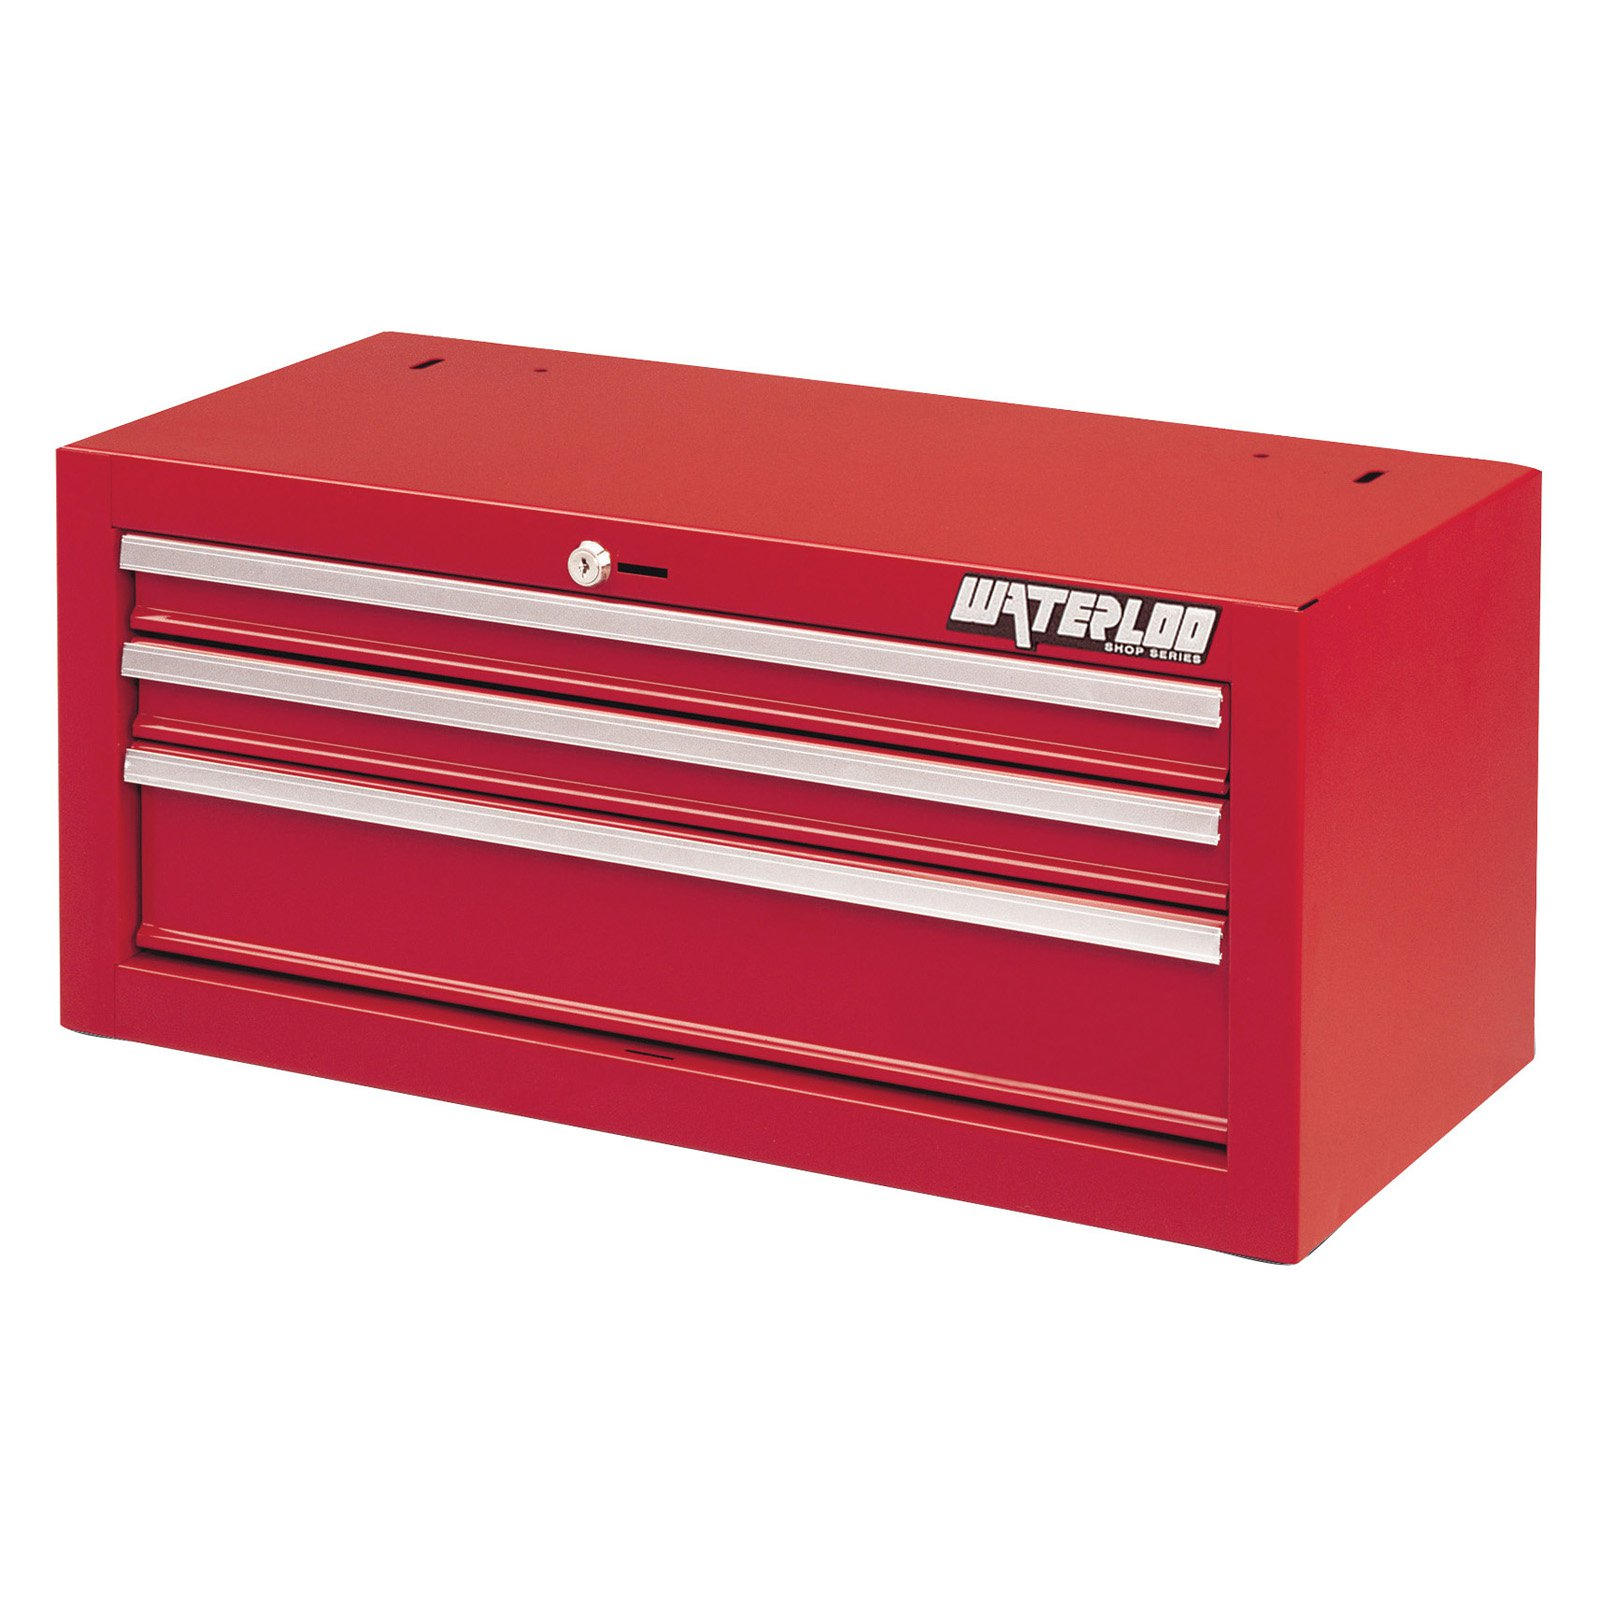 Waterloo Shop Series 26 in. Red 3 Drawer Intermediate Chest